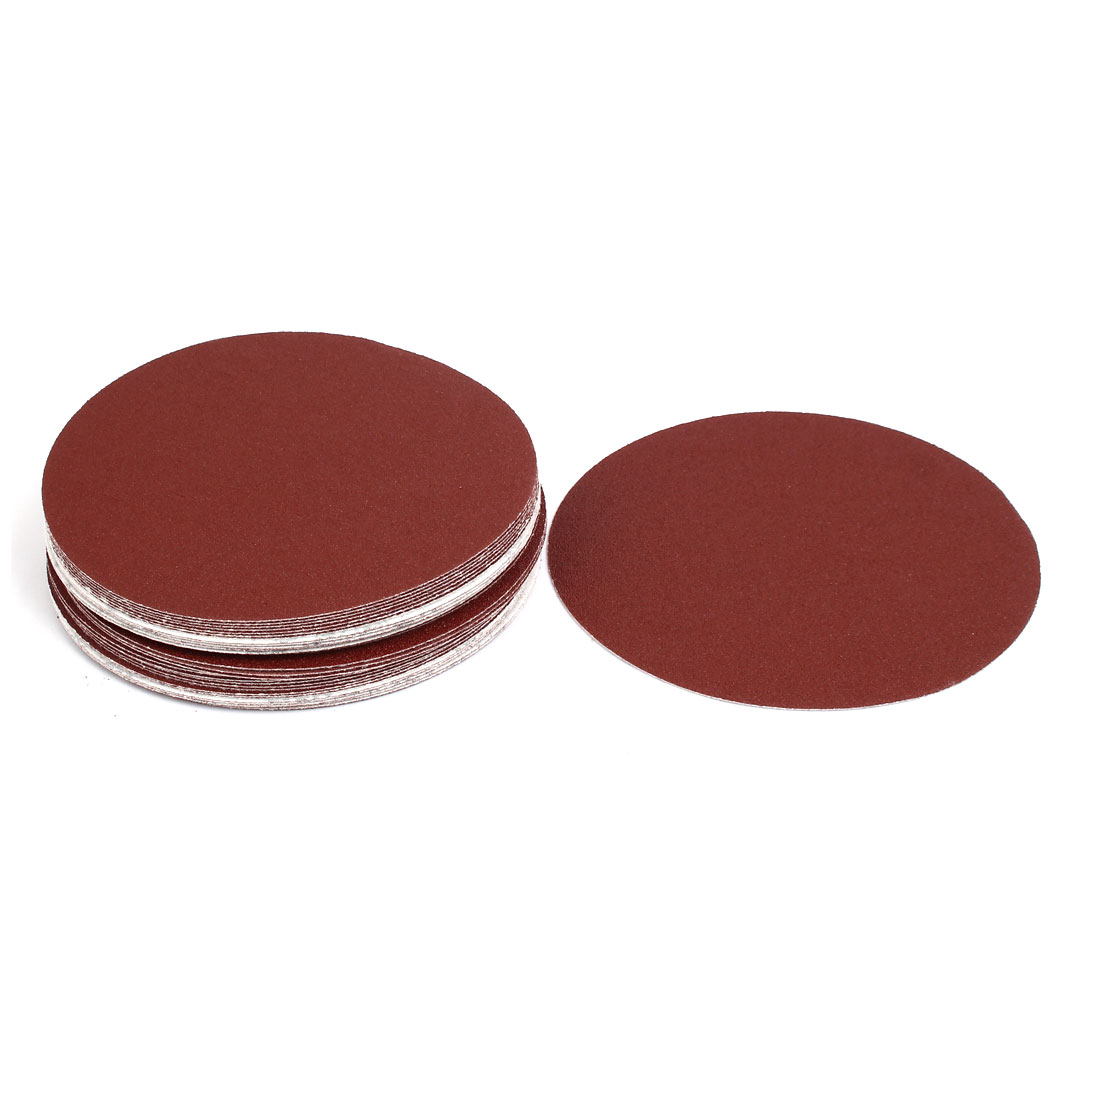 "80 Grit 7"" Diameter Sandpaper Hook Loop Sanding Disc 30 Pcs"